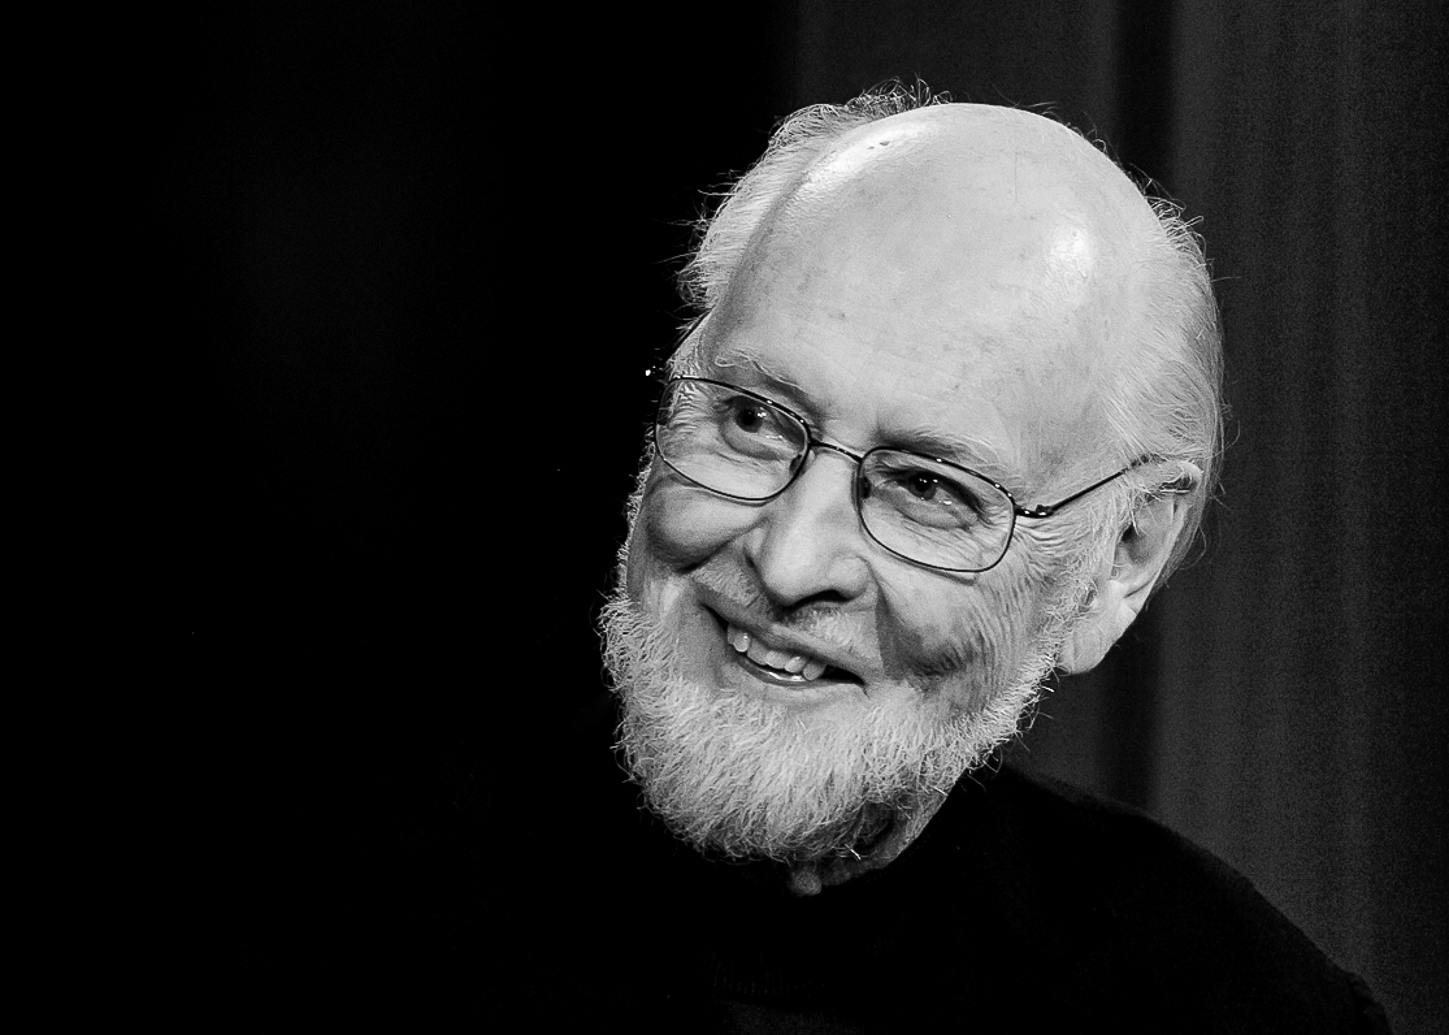 John Williams / jvephoto.com